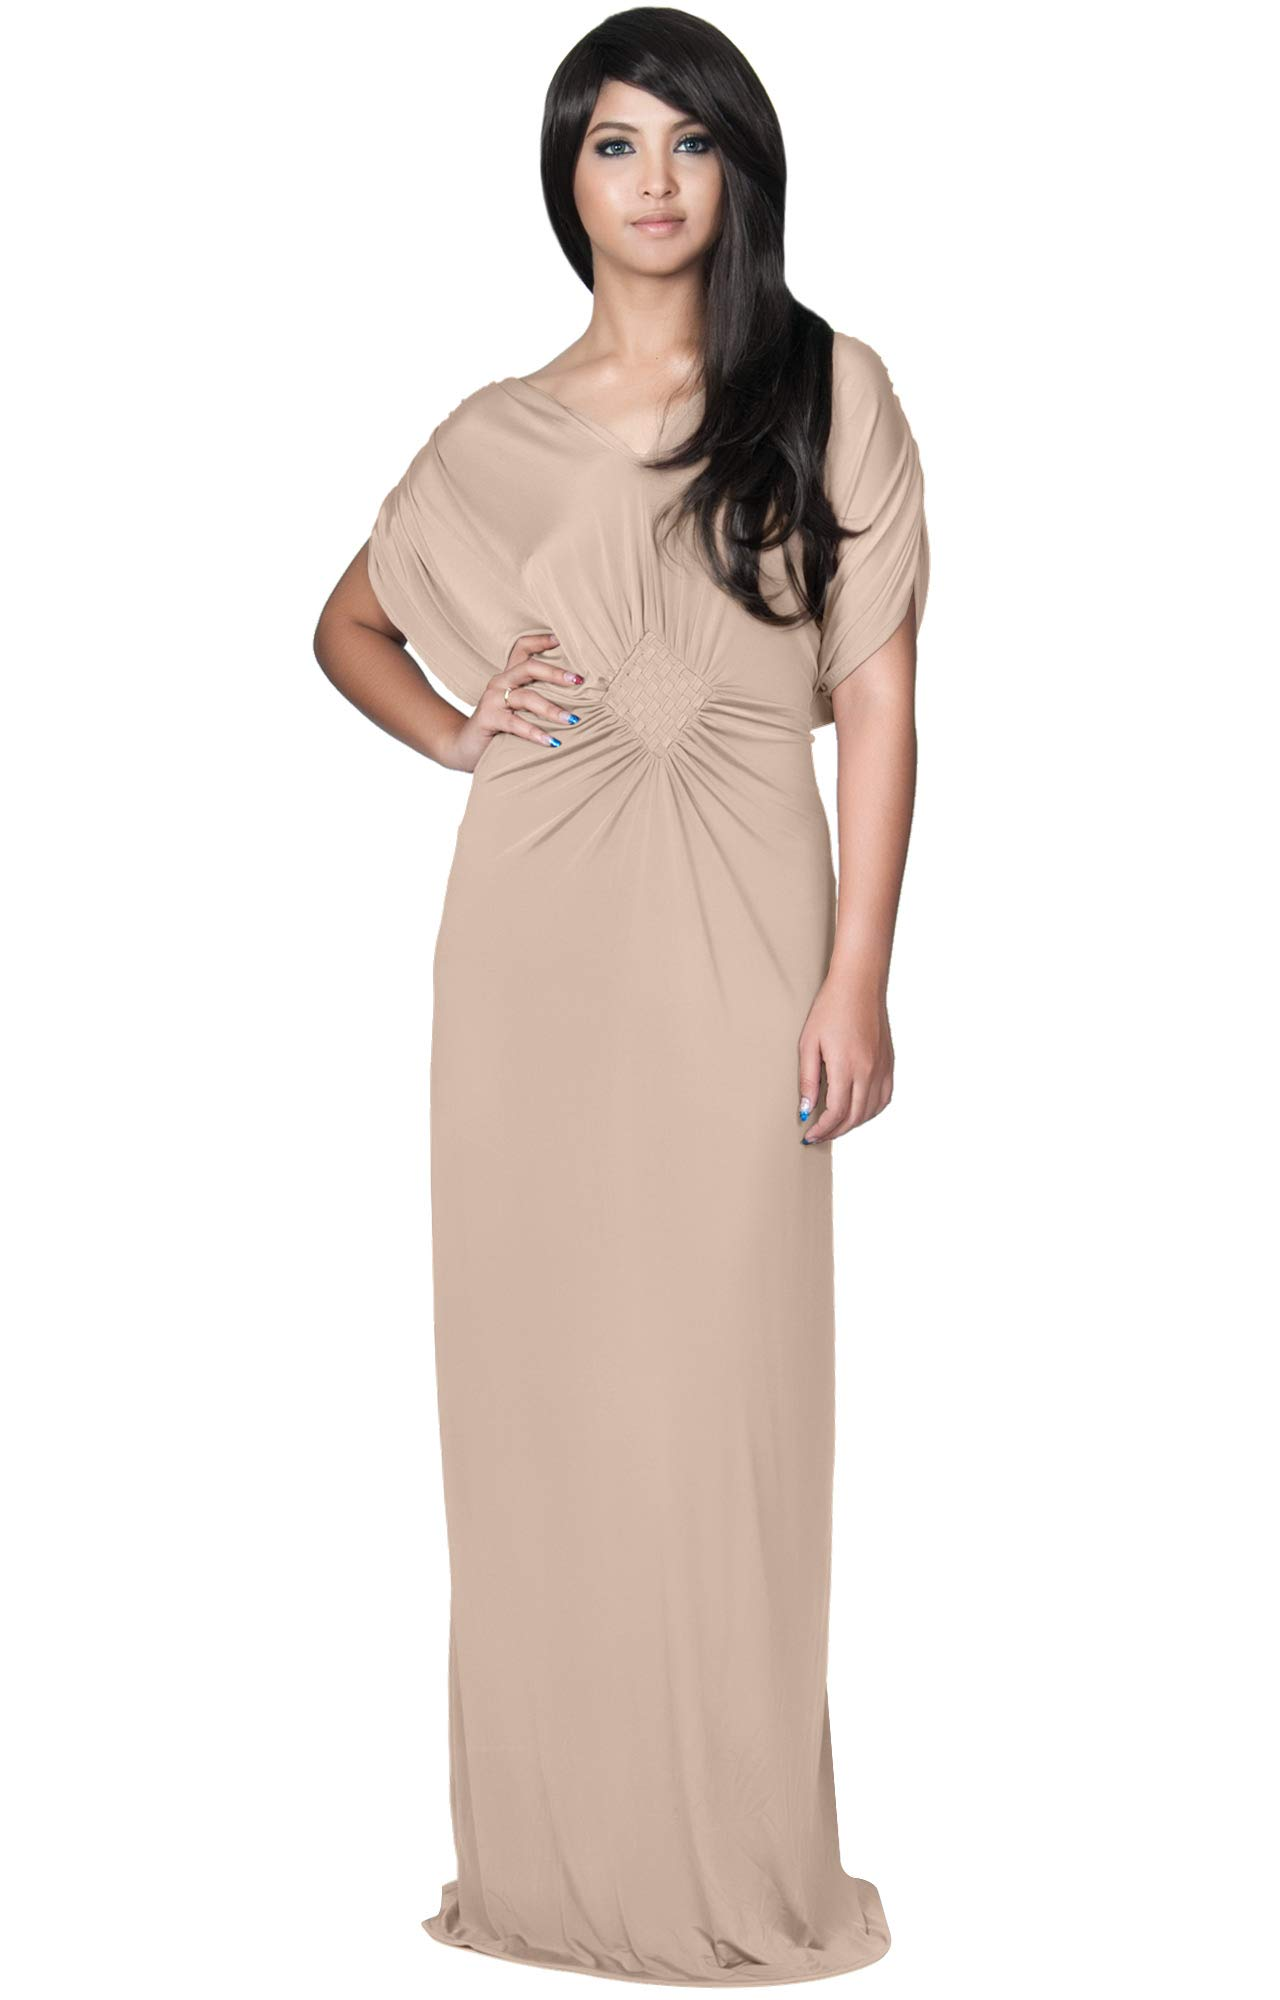 KOH KOH Womens Long Short Sleeve Grecian Goddess Evening Modest Bridesmaid  Formal Sexy Wedding Party Guest Flowy Cute Maternity Gown Gowns Maxi Dress  ... 57341ba8f